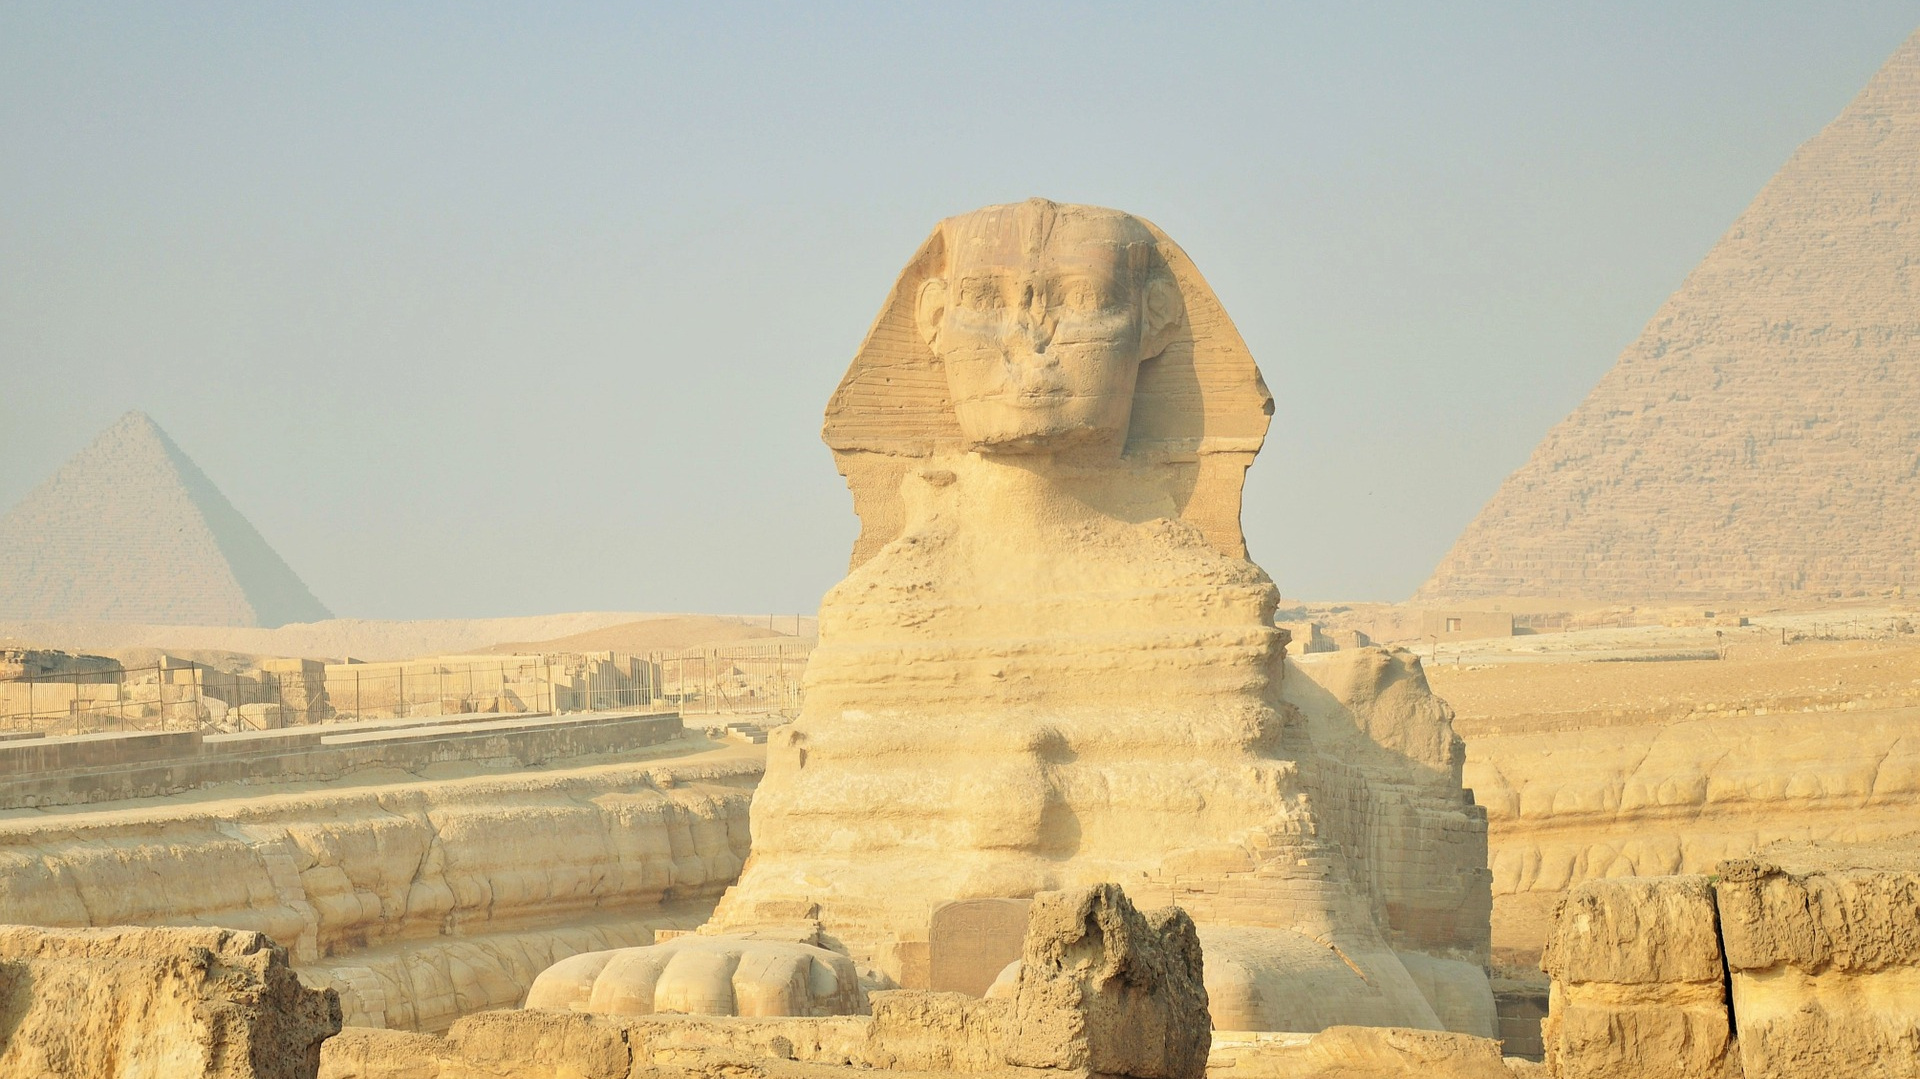 9-day Egyptian Escape with Nile Cruise - Click Image to View Description